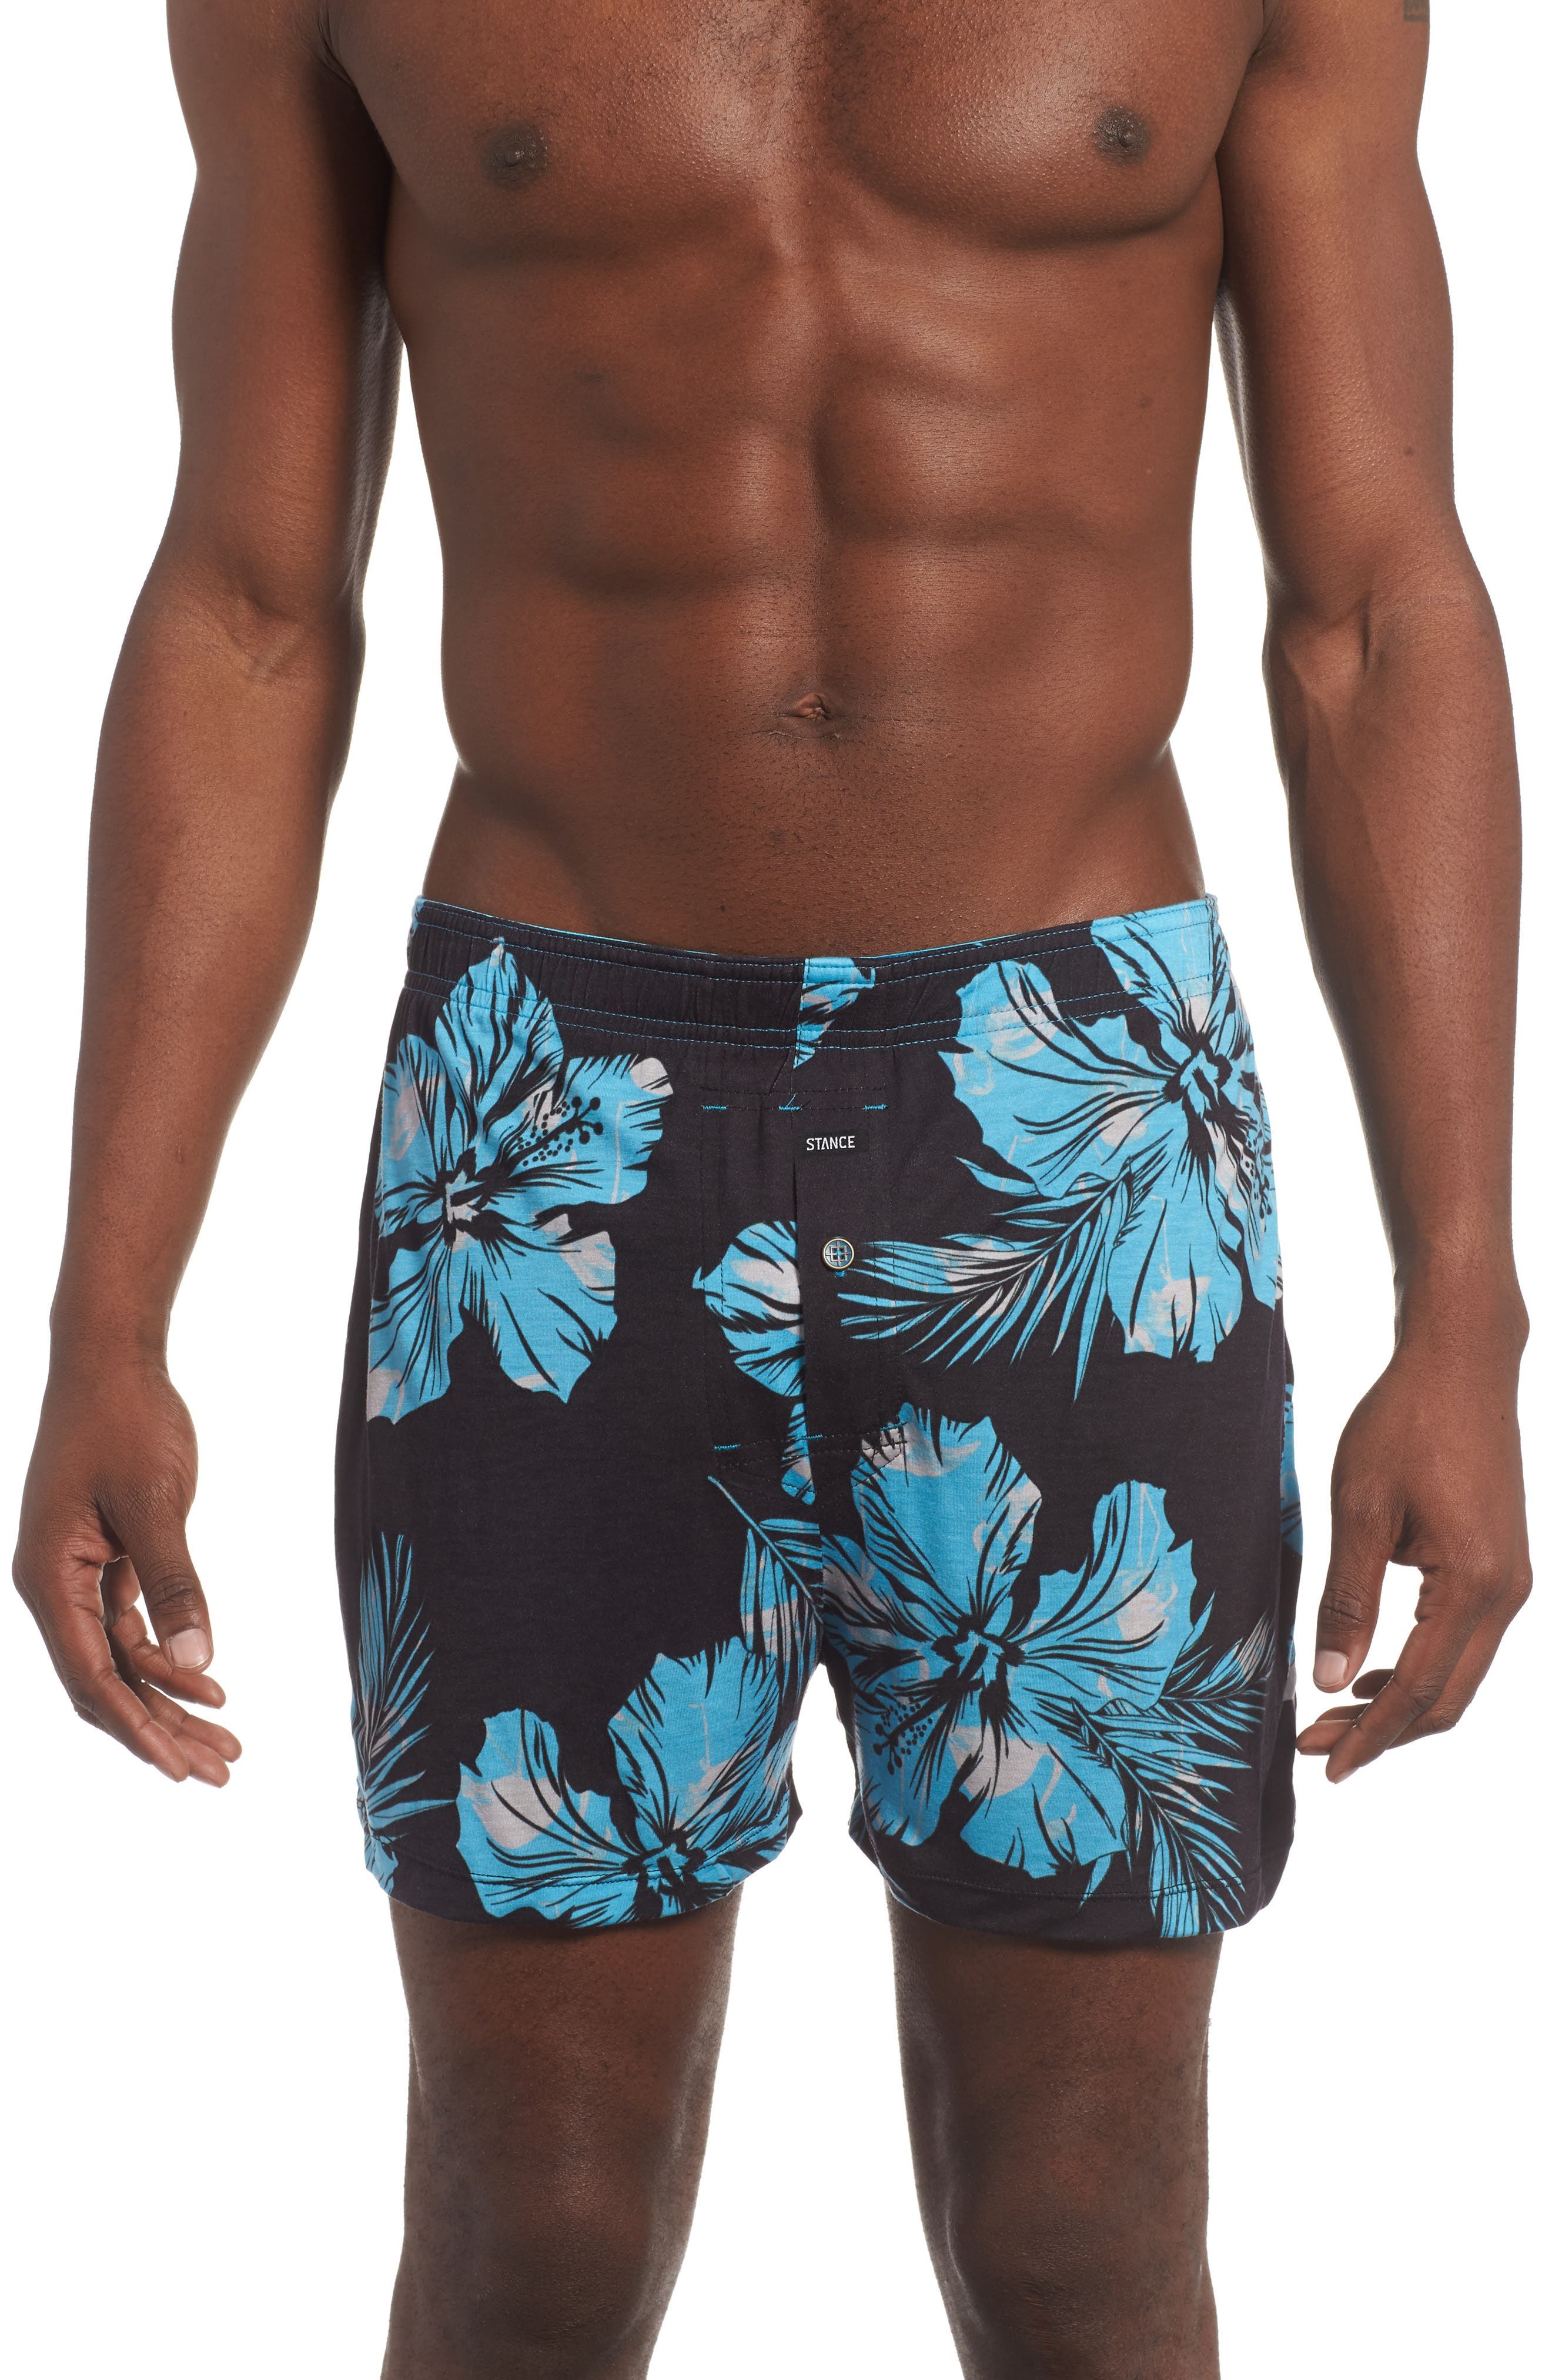 Mercato Flamingo Flowers Boxer Briefs,                             Main thumbnail 1, color,                             Blue